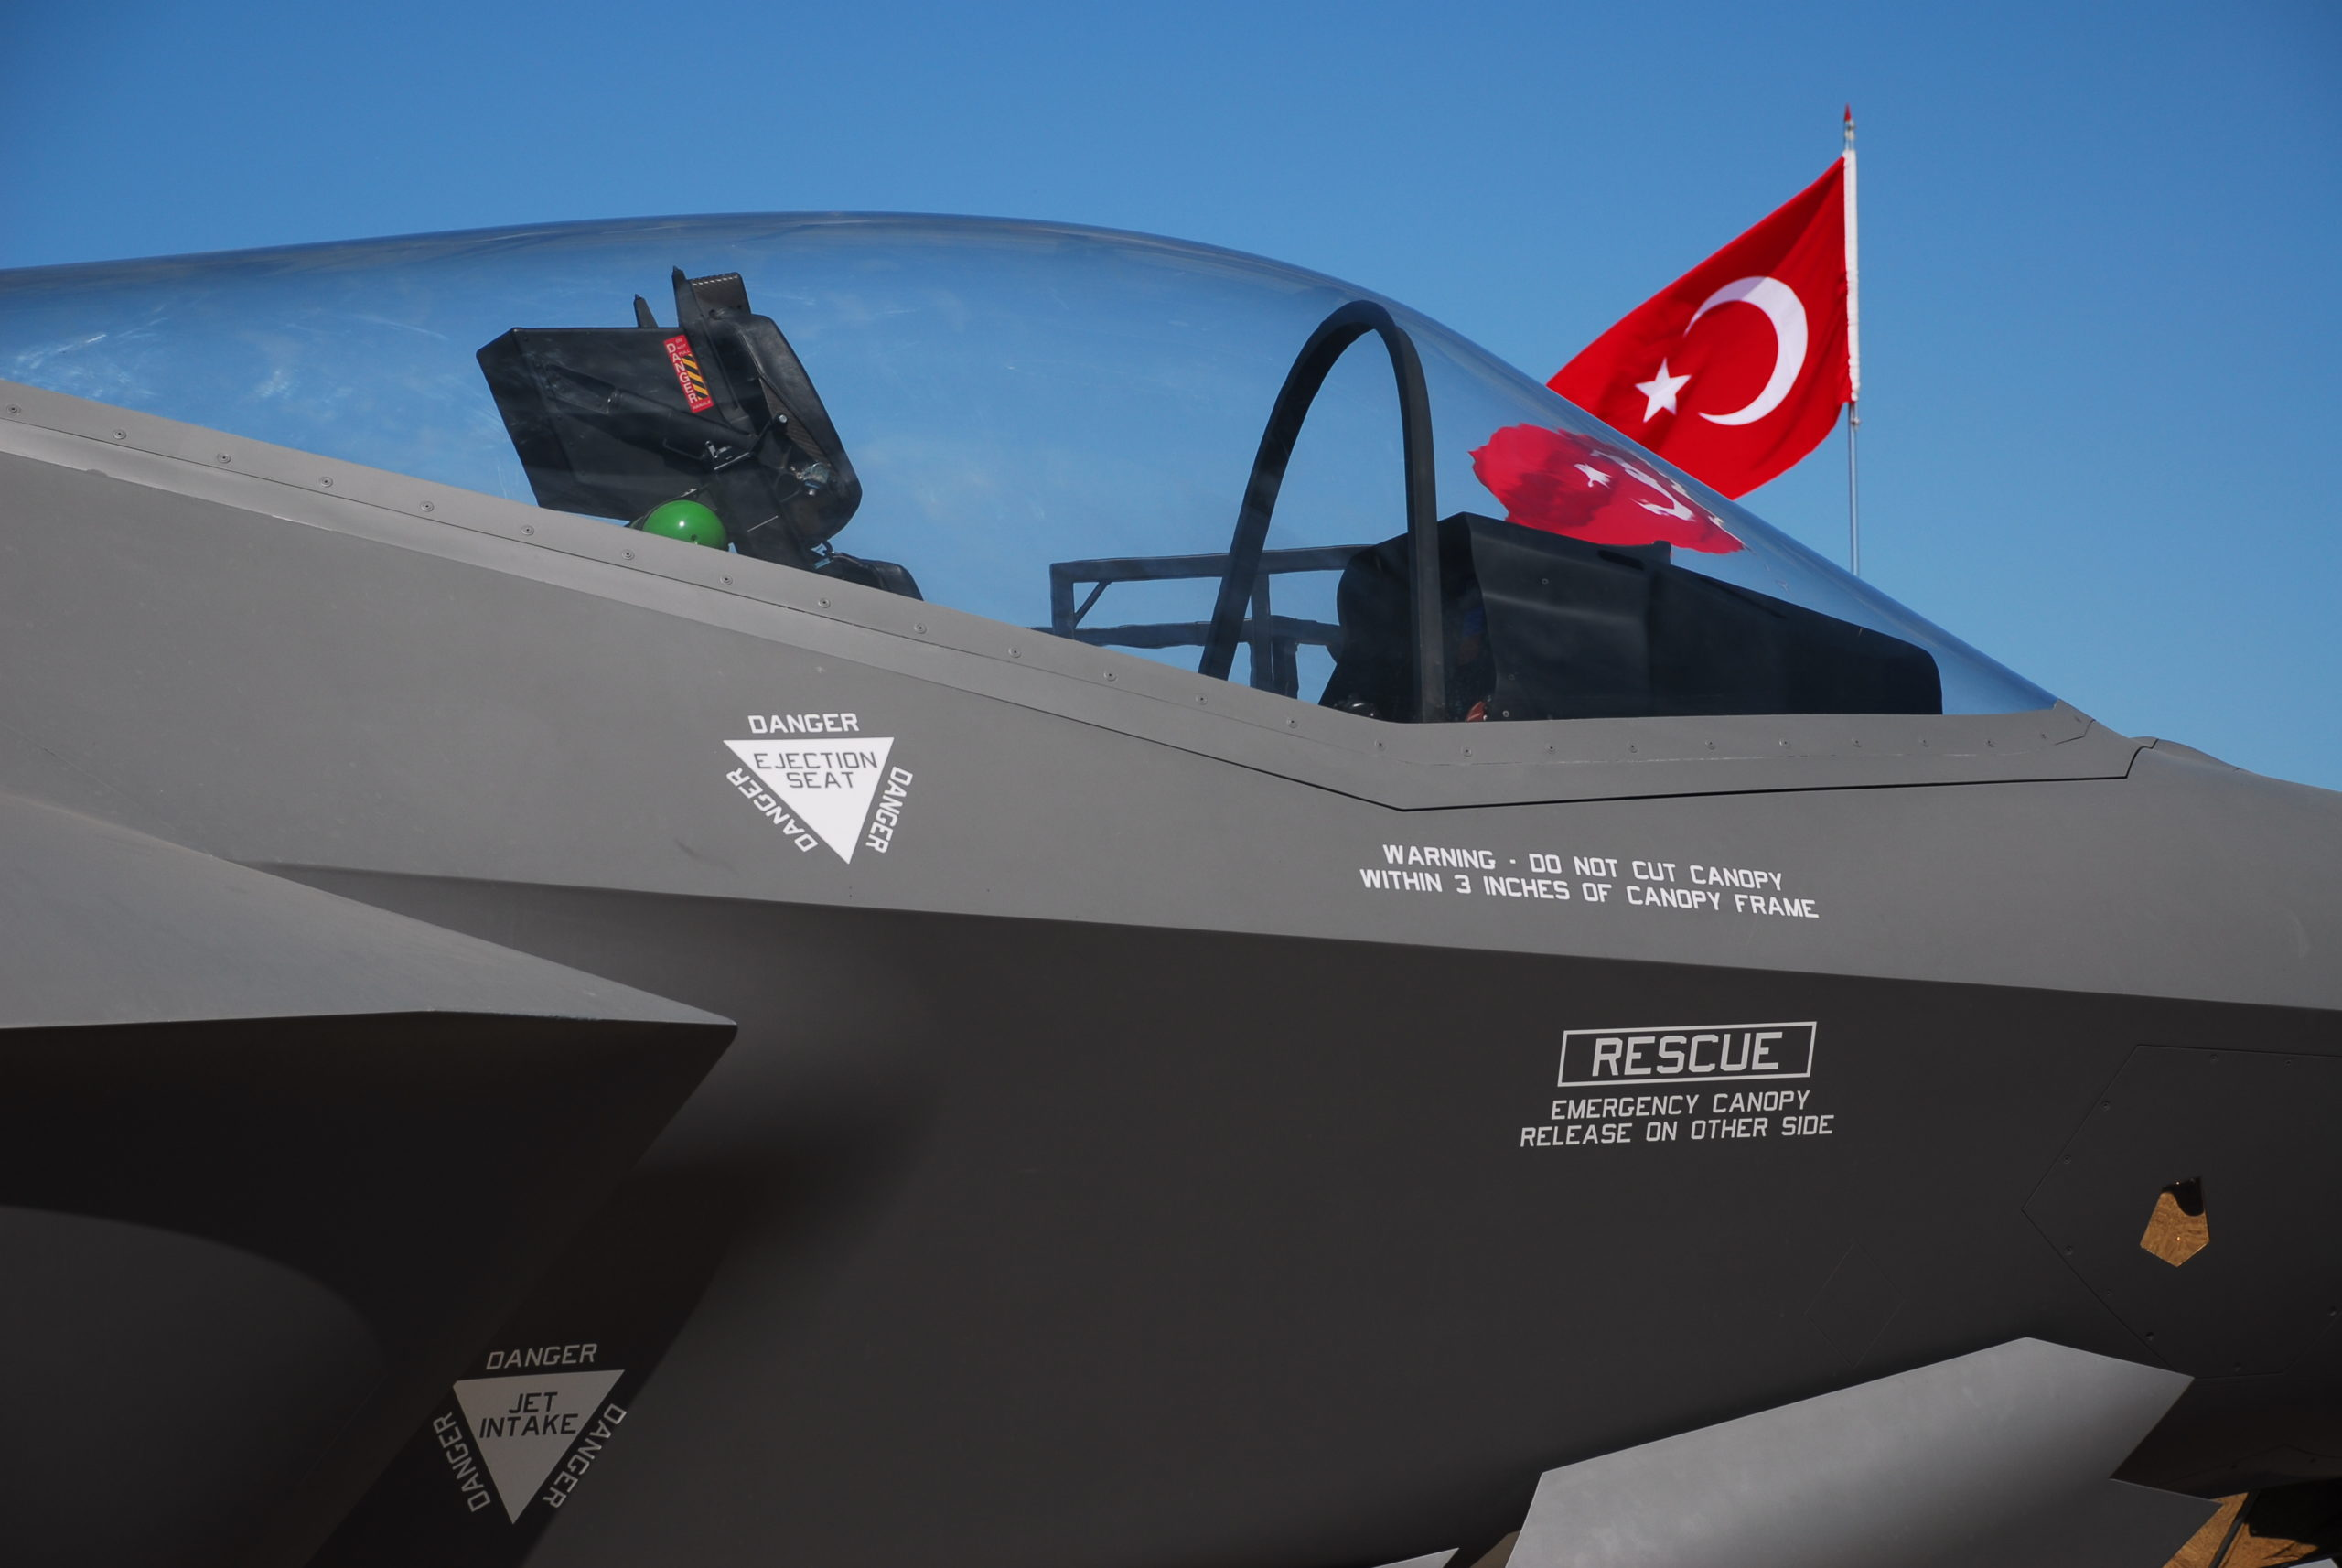 Libian Military Just Shot Two Turkish Airplanes West of Tripoli